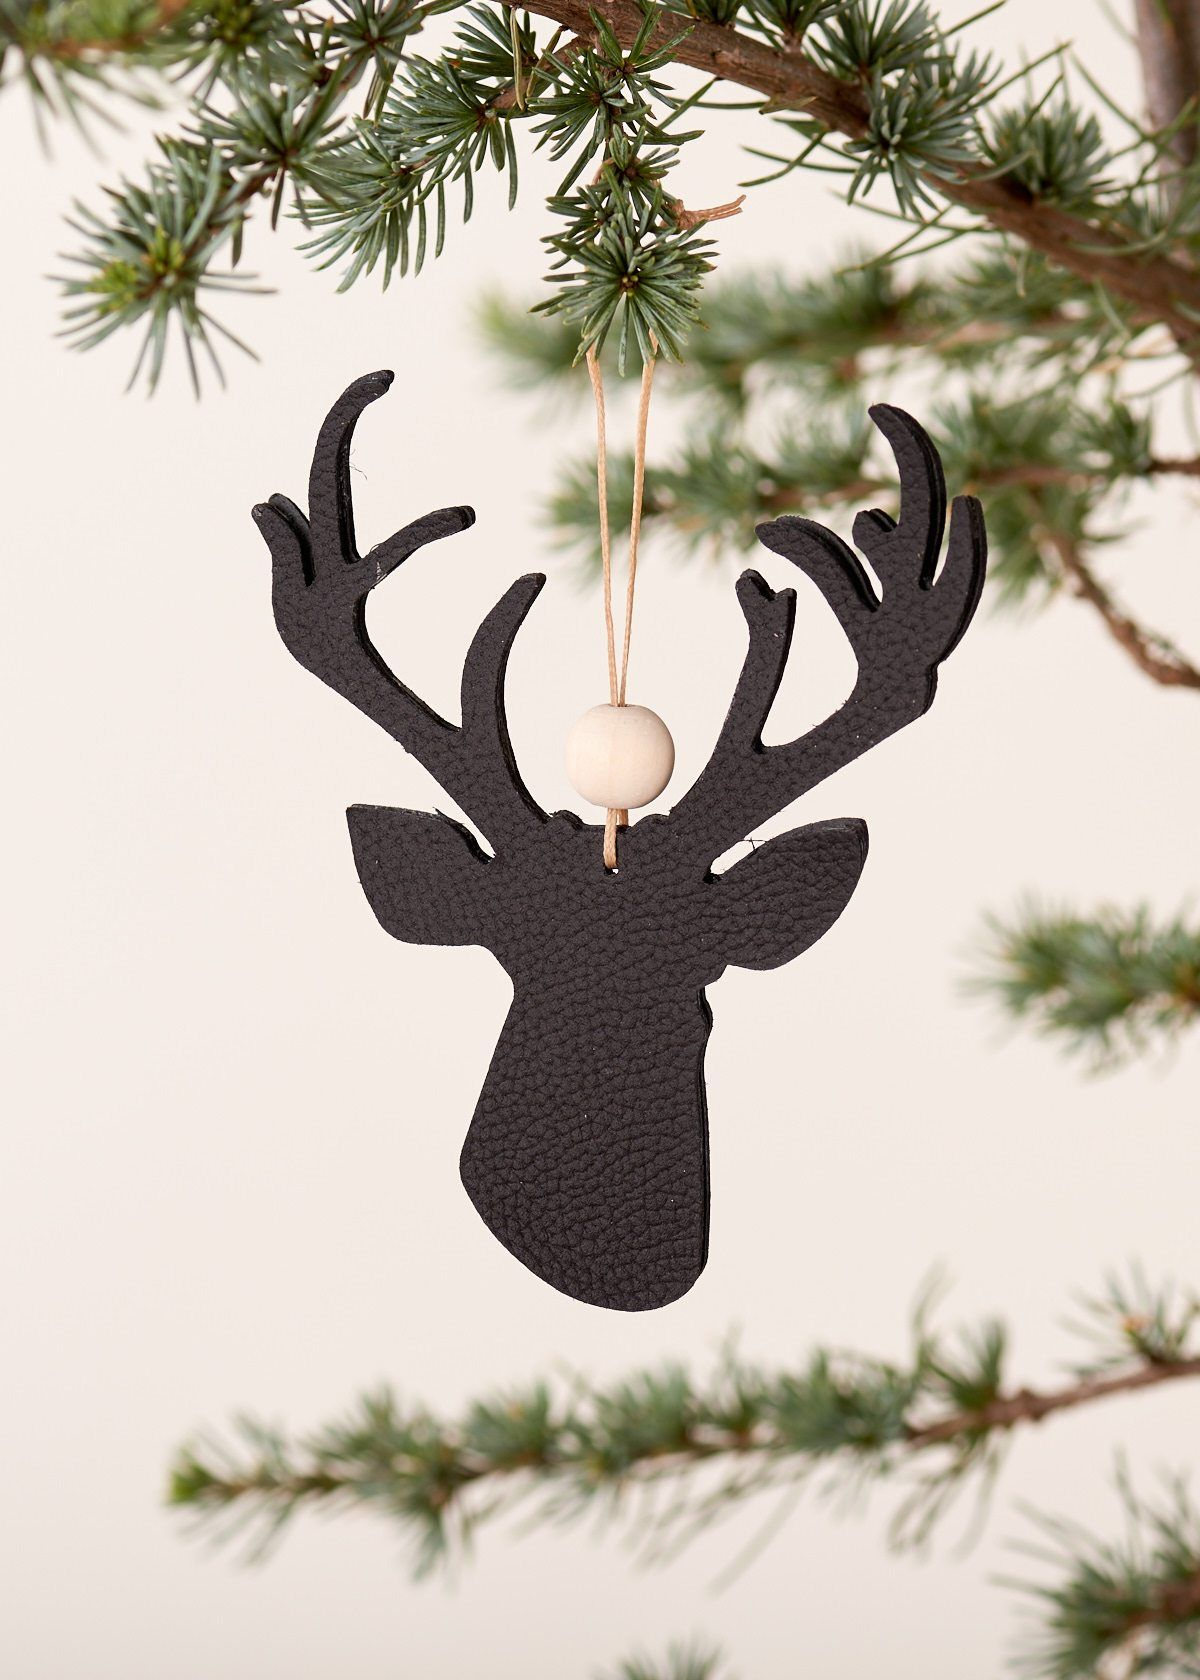 Handmade Christmas Ornament Leather Reindeer Black With Wooden Beads Simple Scand Scandinavian Christmas Decorations Scandi Christmas Scandinavian Christmas